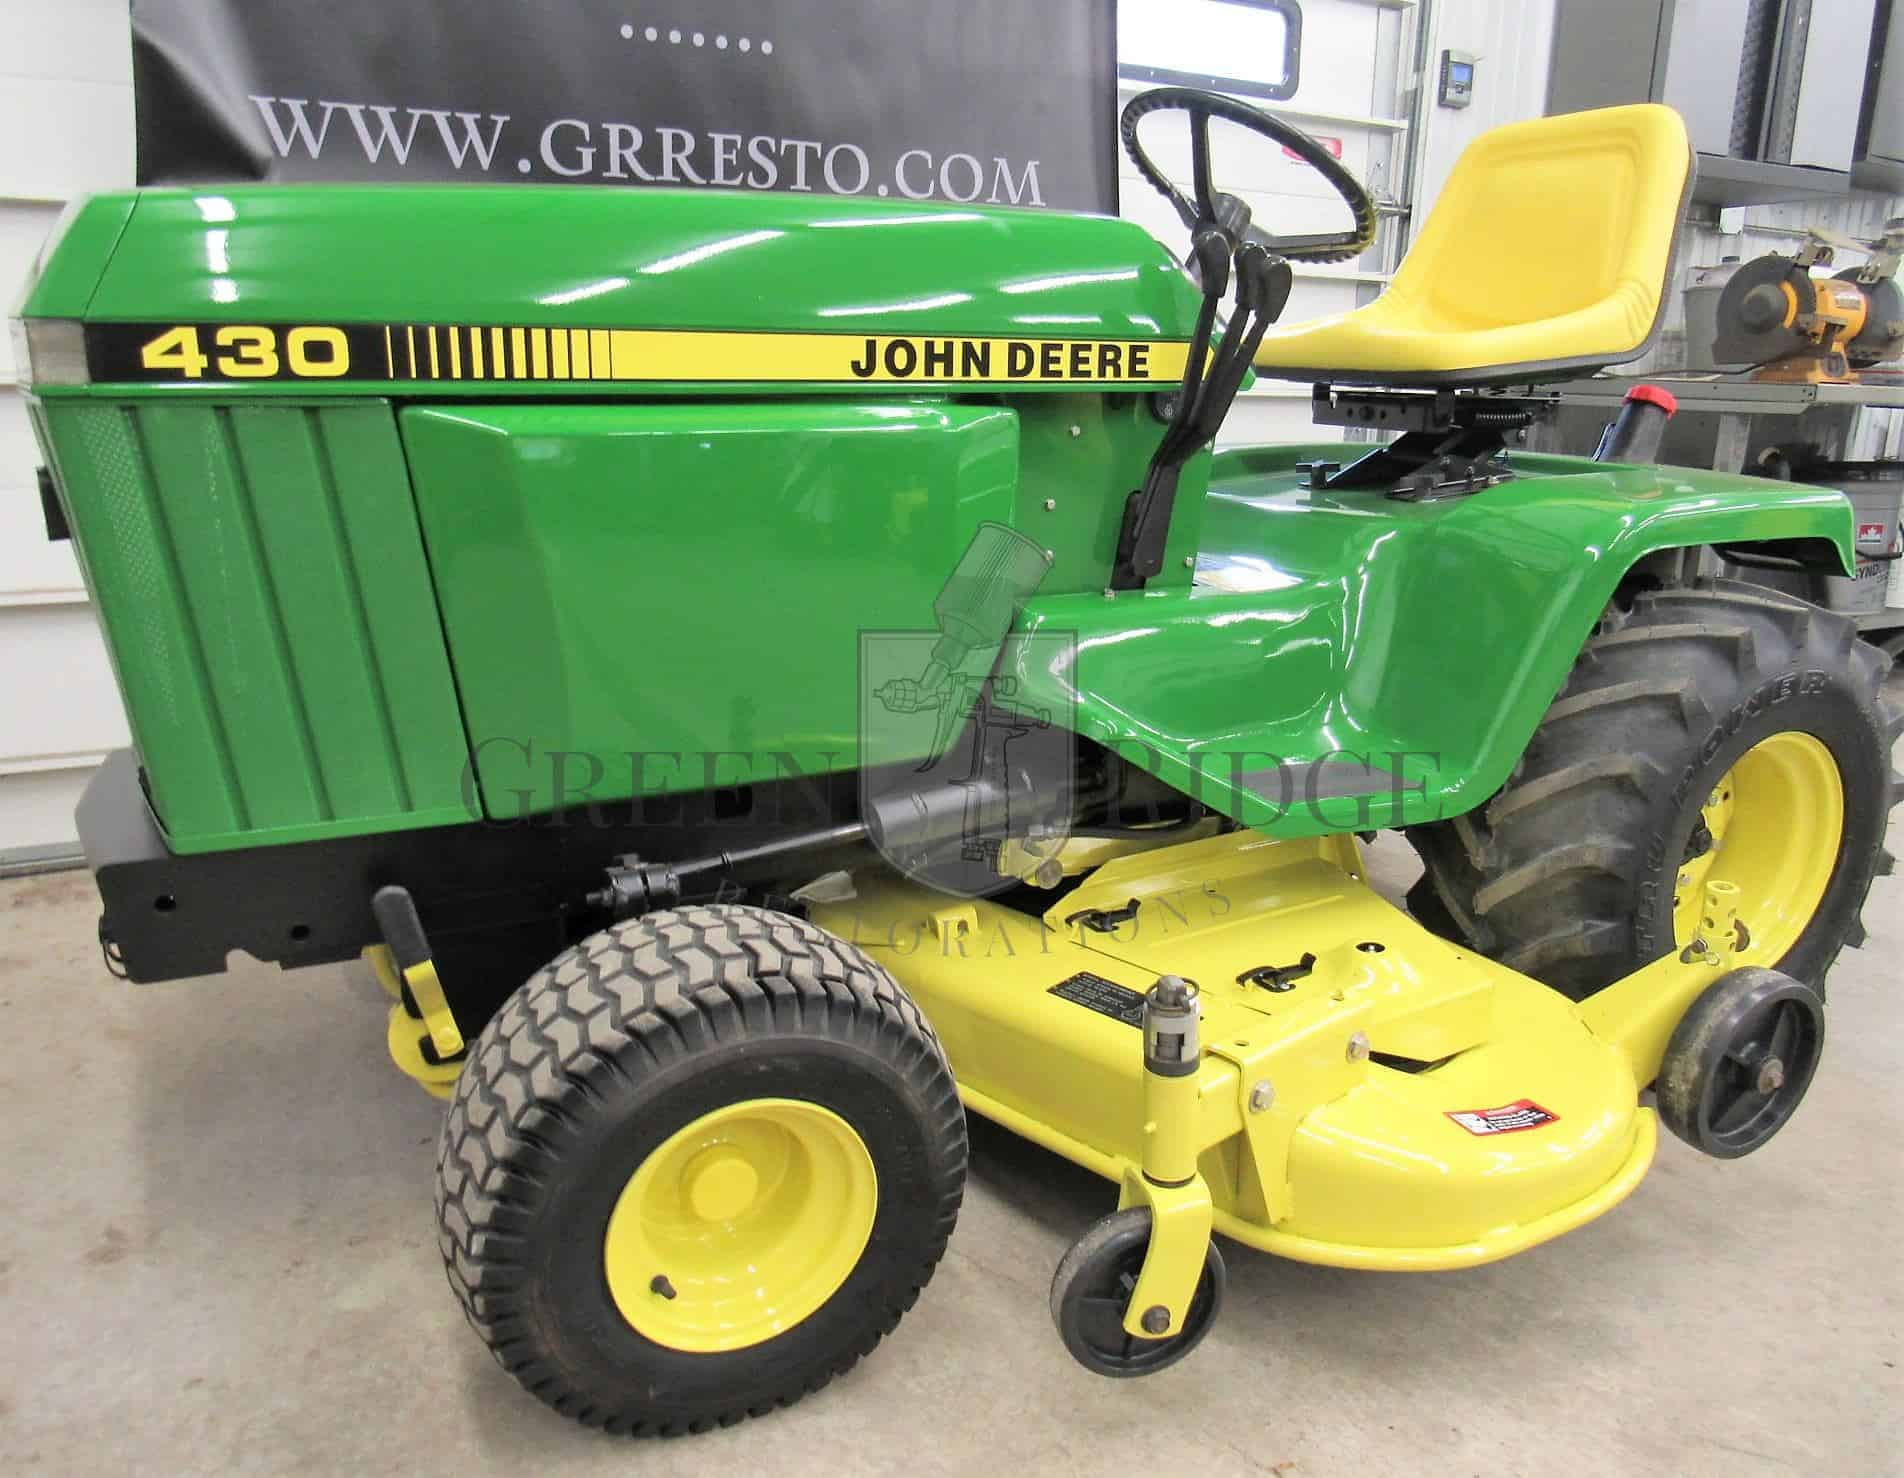 John Deere 430 For Sale 1986 Lawn And Garden Tractor In